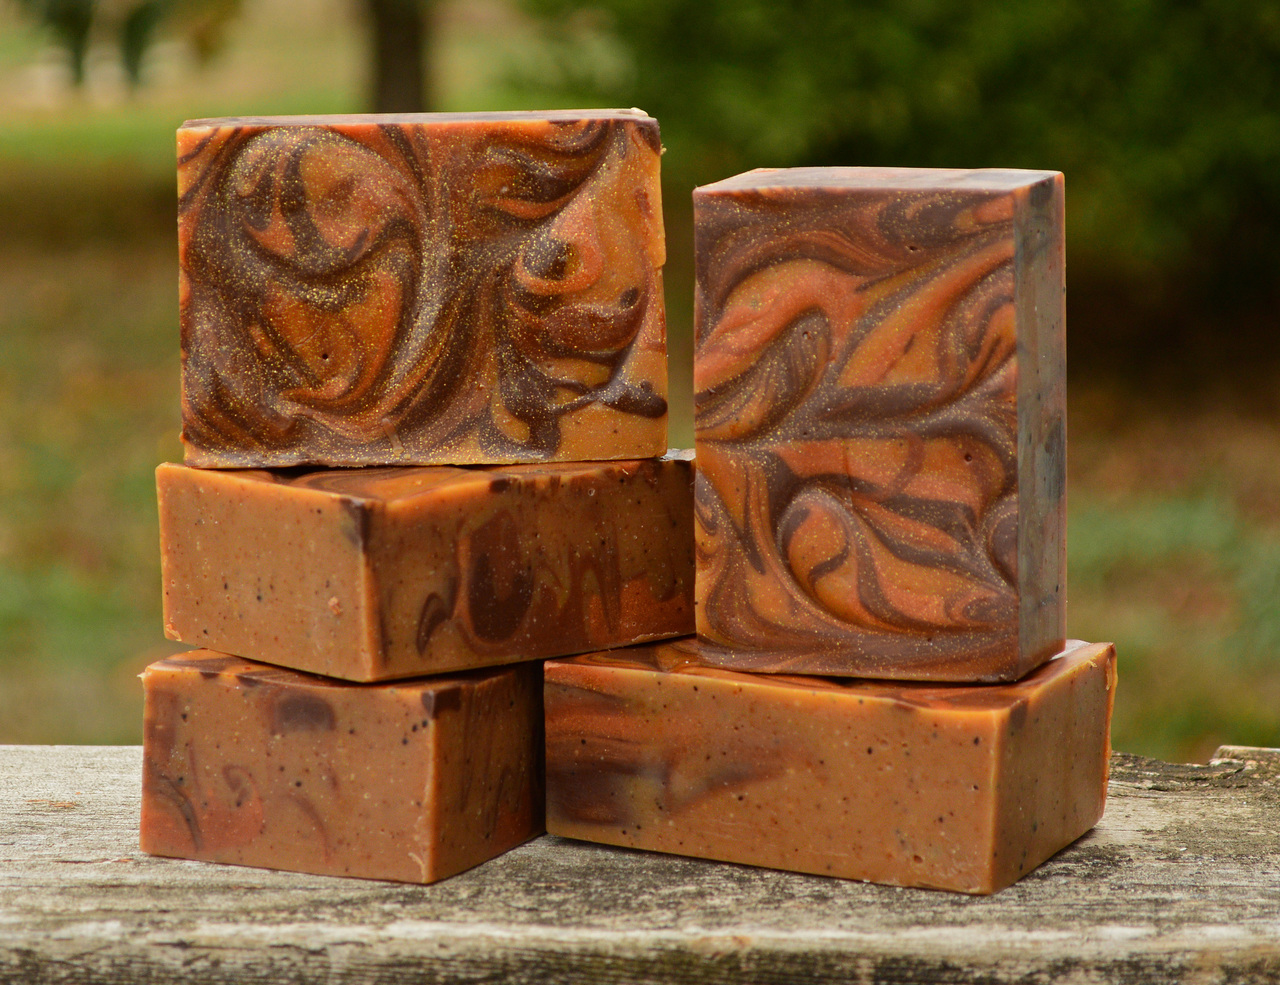 Coffee Shop Romance Artisan Goat Milk Soap